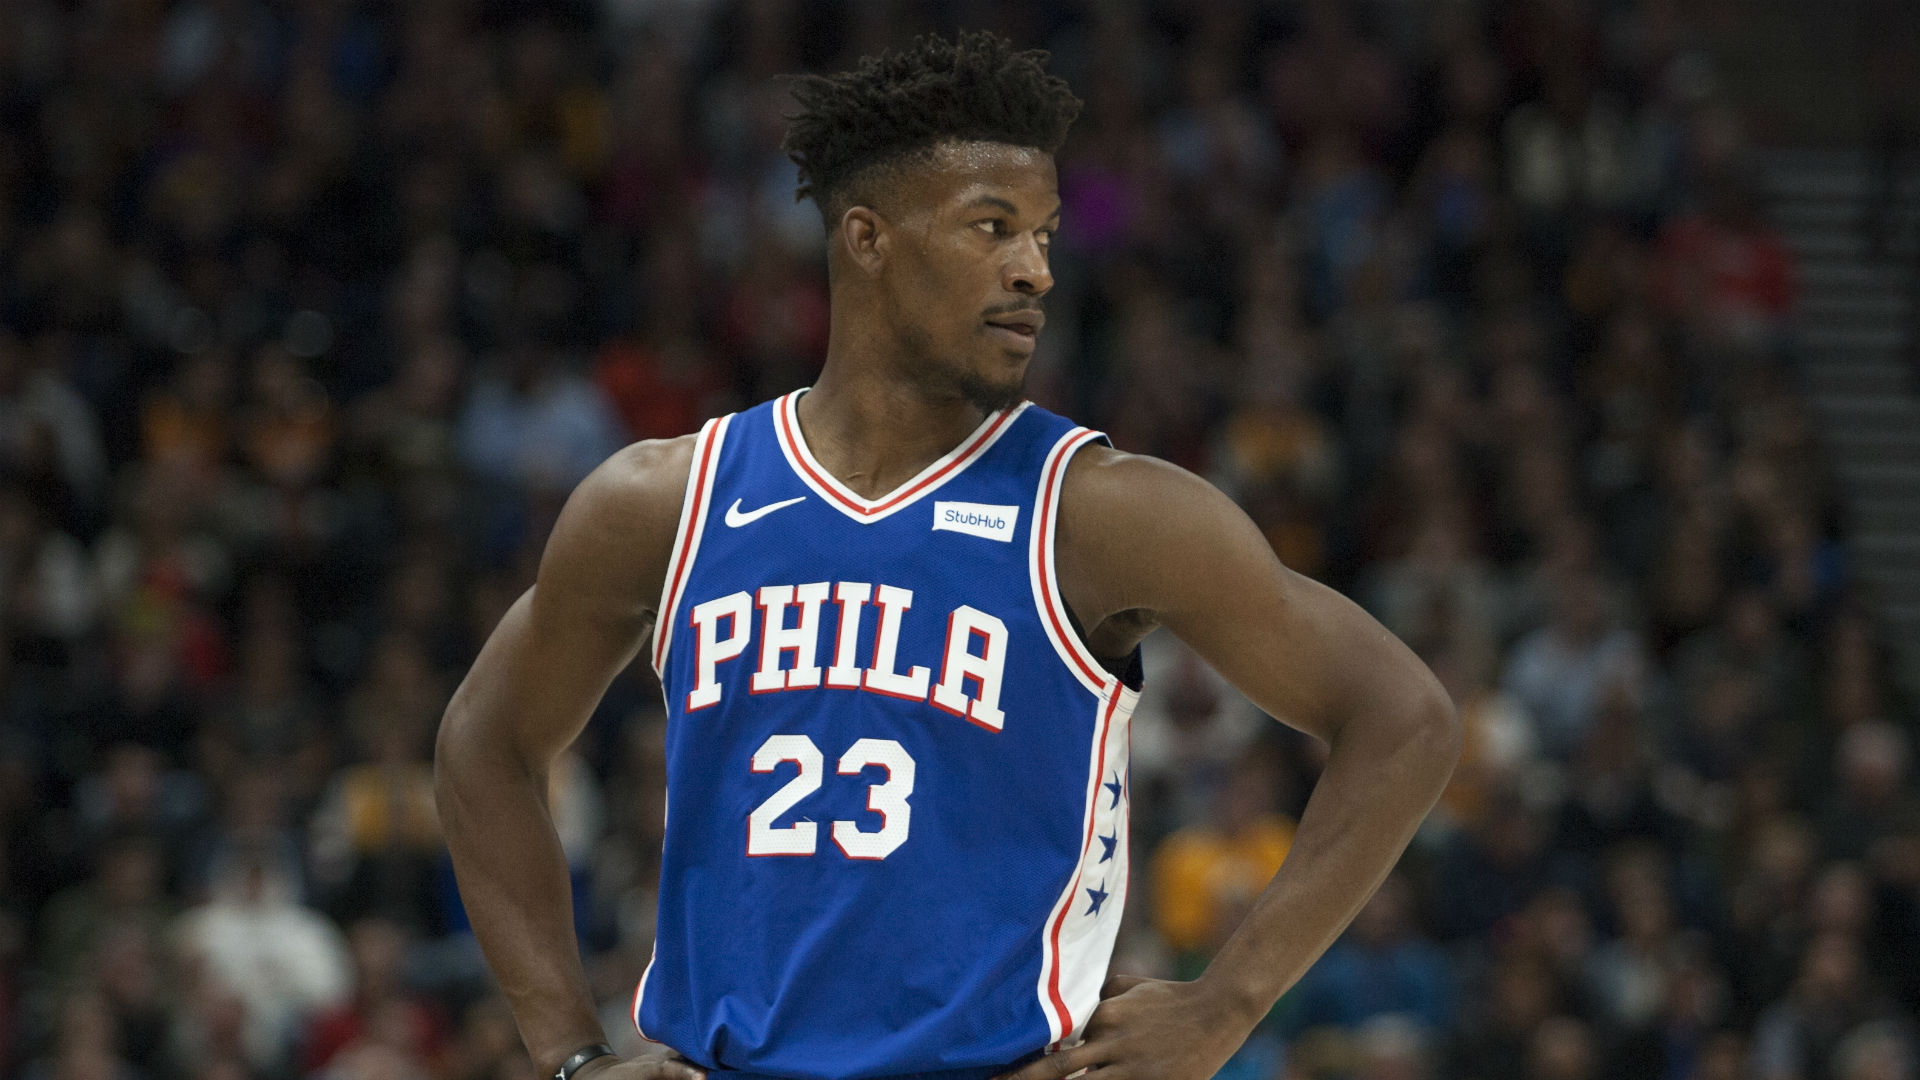 Jimmy Butler unhappy with 76ers role